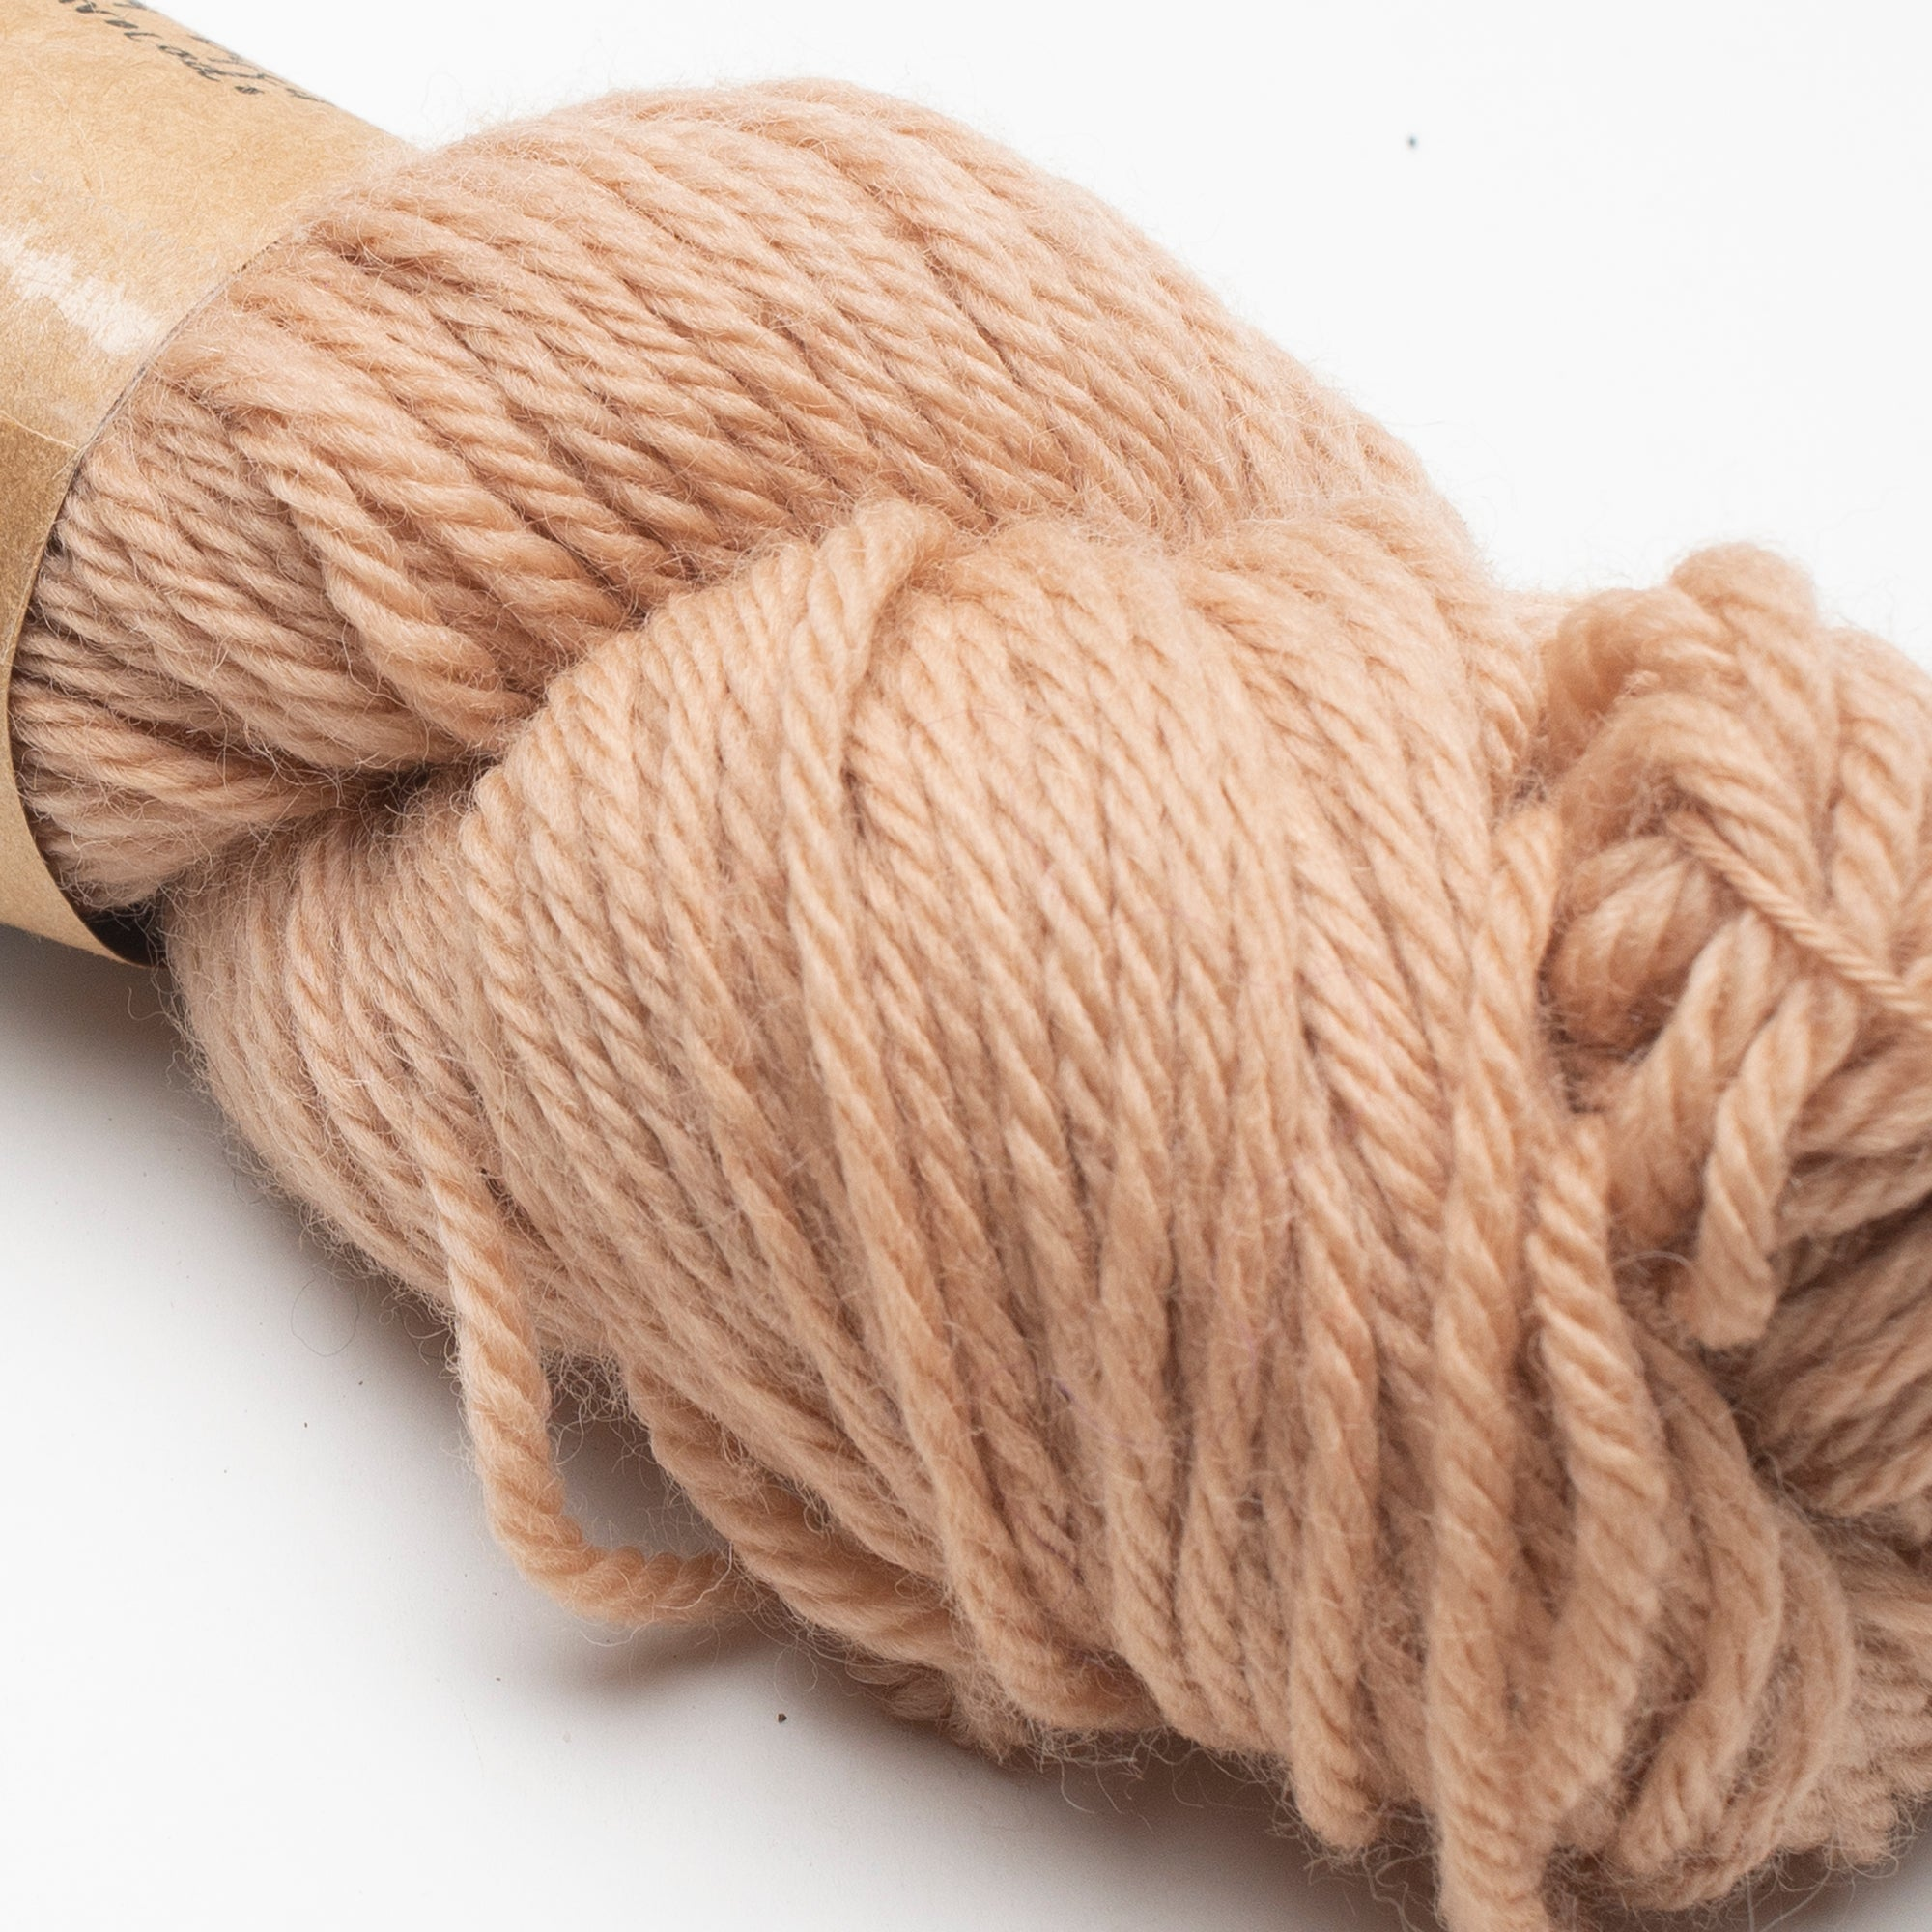 Yarn - Bulky Wool Naturally Dyed with Avocado